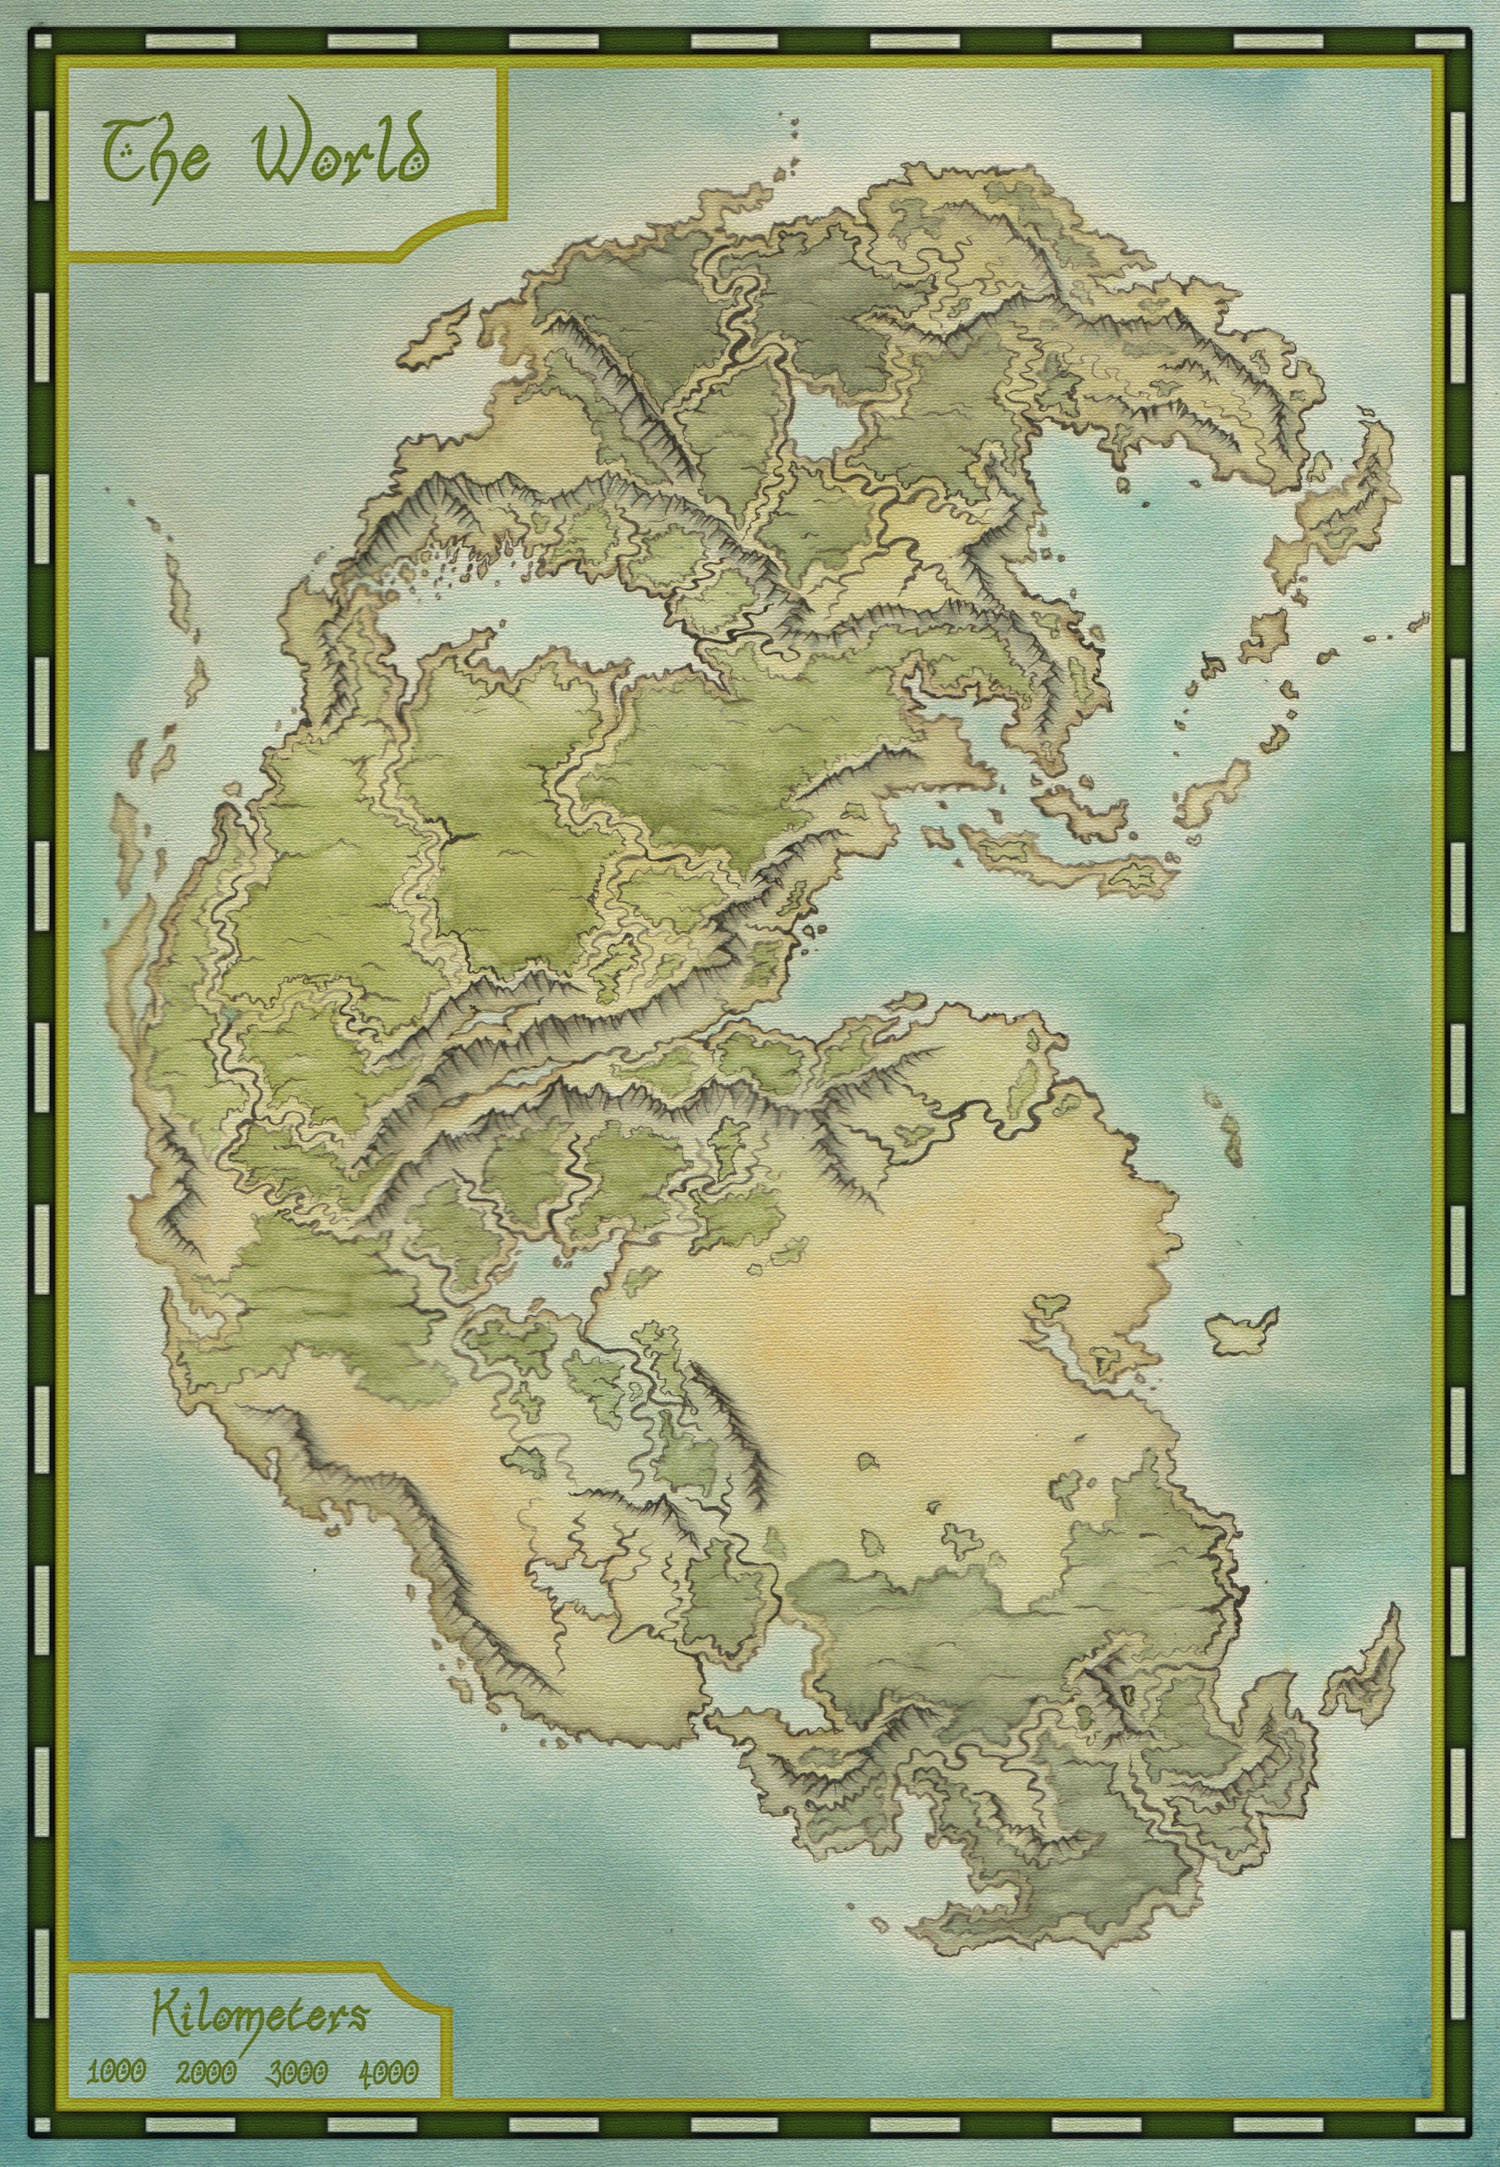 A fantasy map based on Pangea. Watercolors and Photoshop.